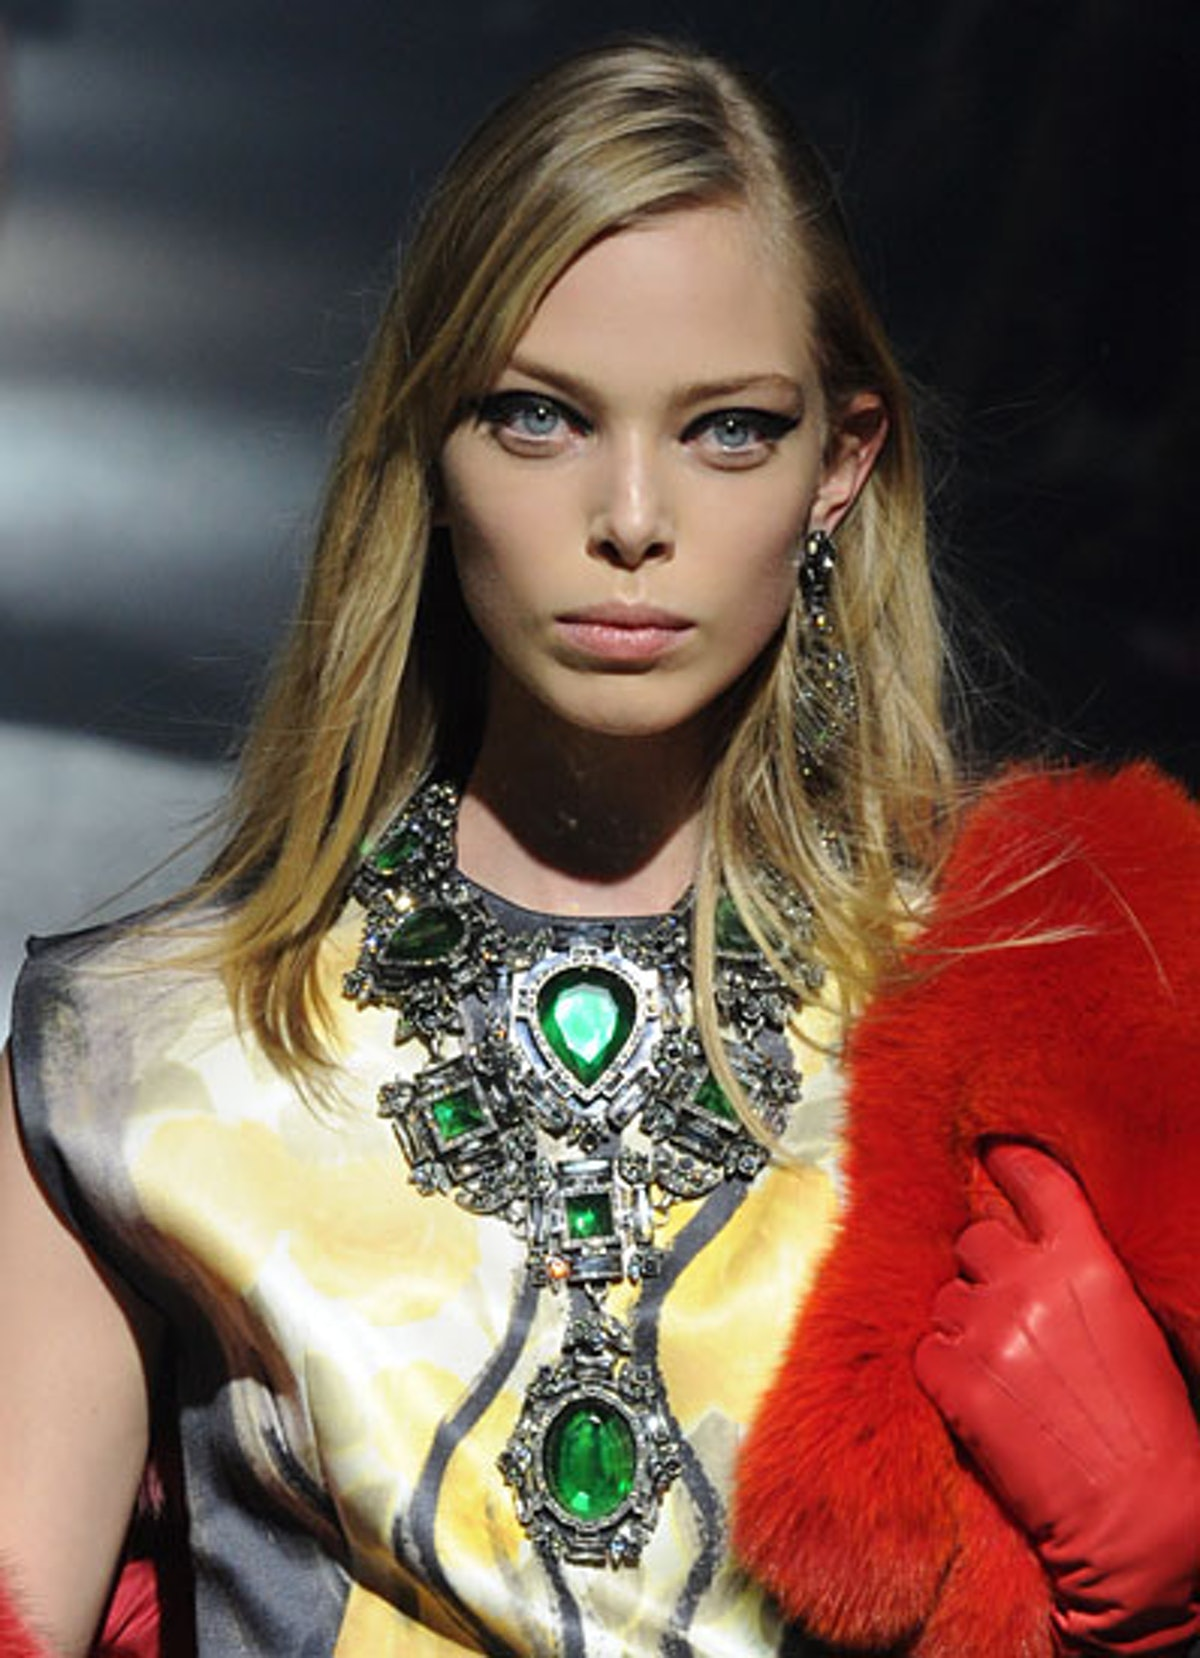 acss-fall-2012-accessories-roundup-12-v.jpg